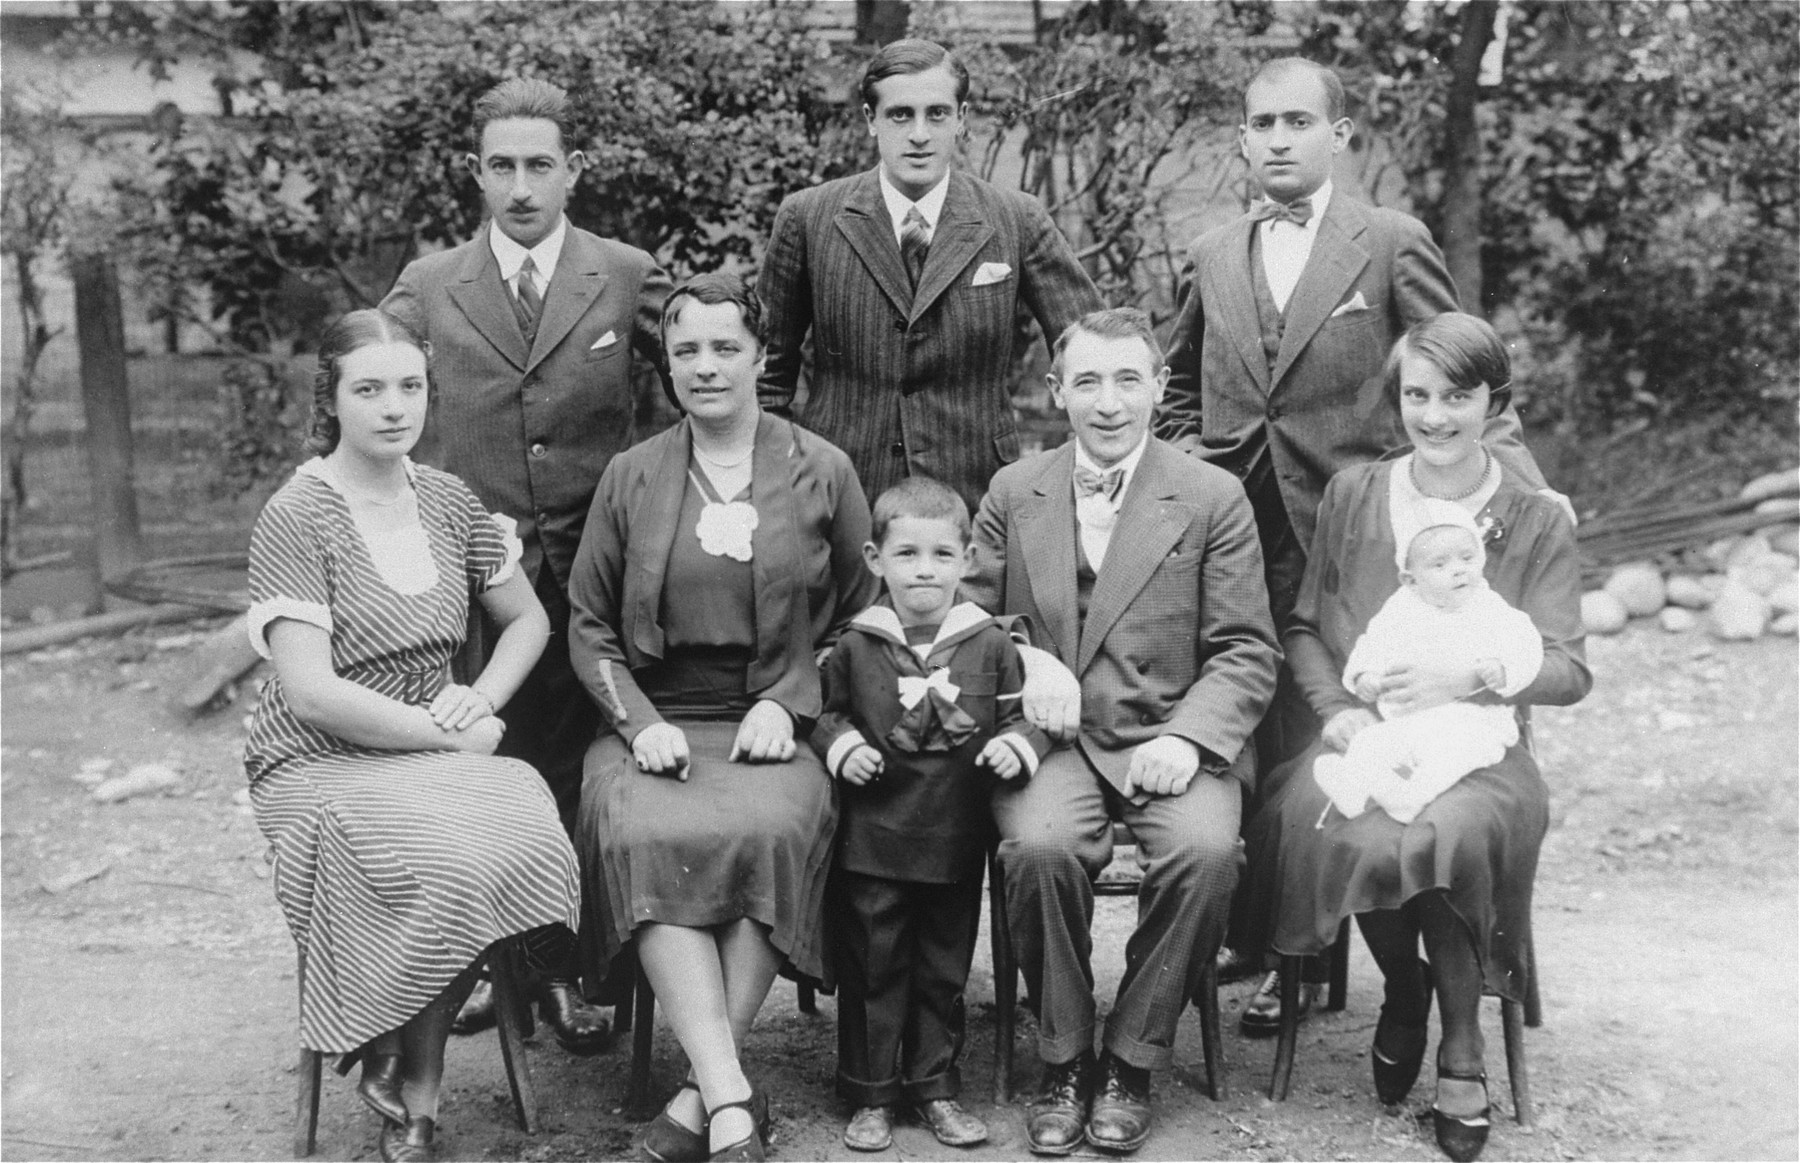 Portrait of the Riegelhaupt family.    Arie Klein stands in between his grandparents, Julia Riegelhaupt (Grinweld) and Zigmund Riegelhaupt. Also pcitured are Eva Klein's brother, Leo Riegelhaupt and sister, Joly.